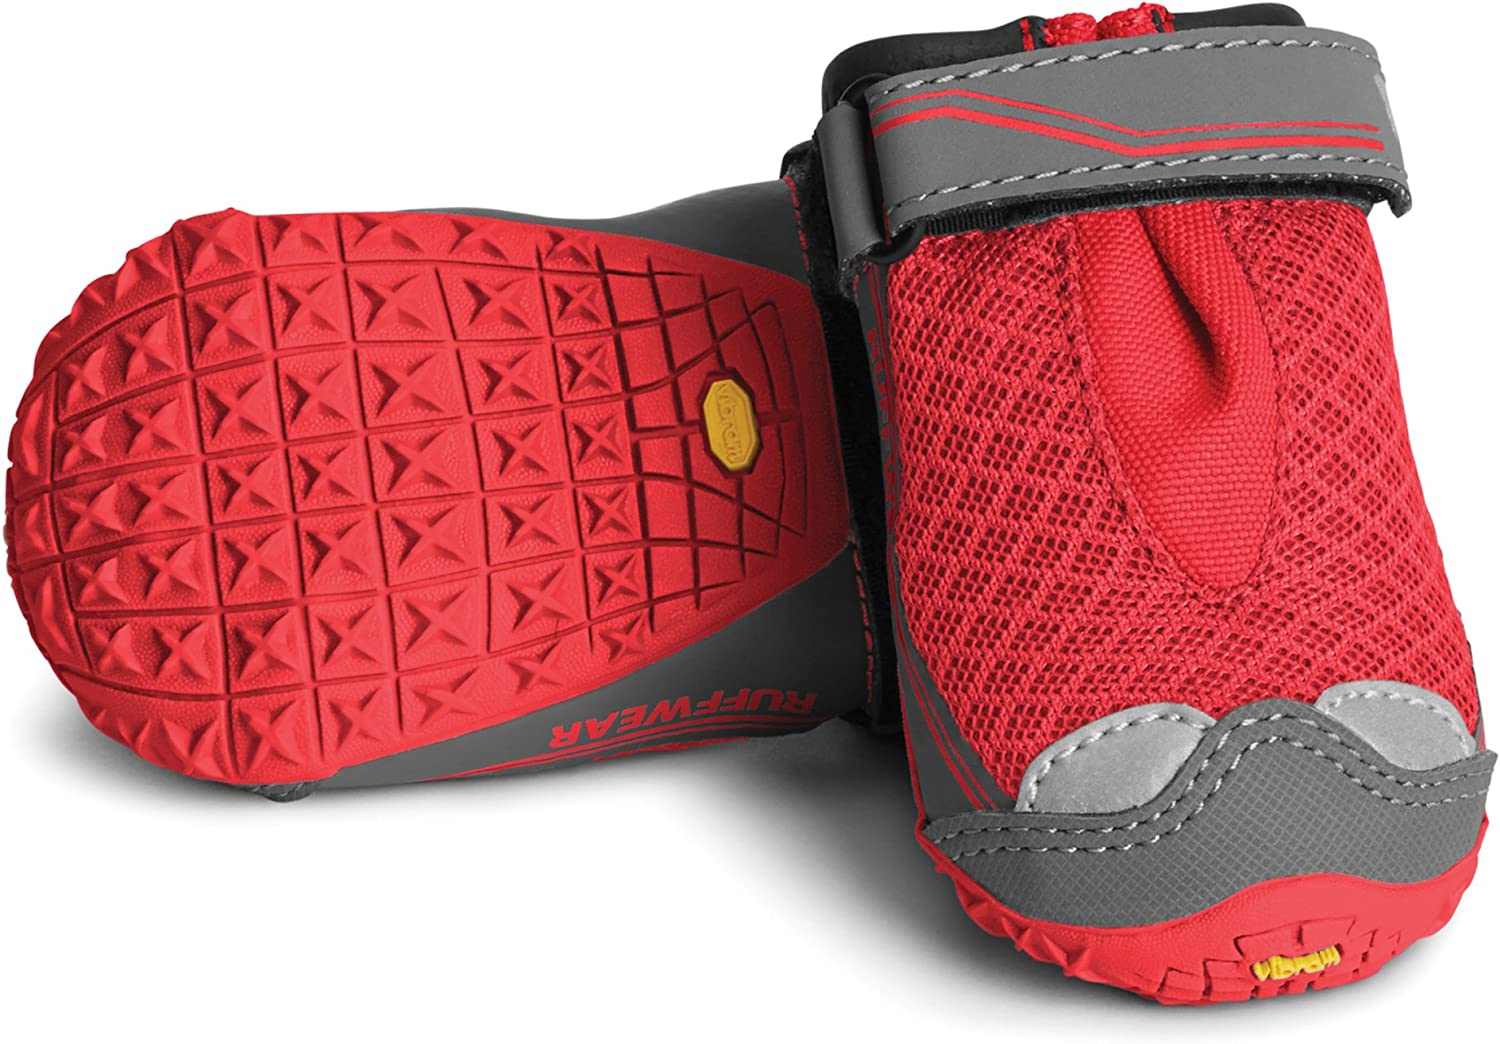 Red Currant 15202-615300 Size: 76 mm//3 in Grip Trex Large Breeds RUFFWEAR All-Terrain Dog Boots Set of 4